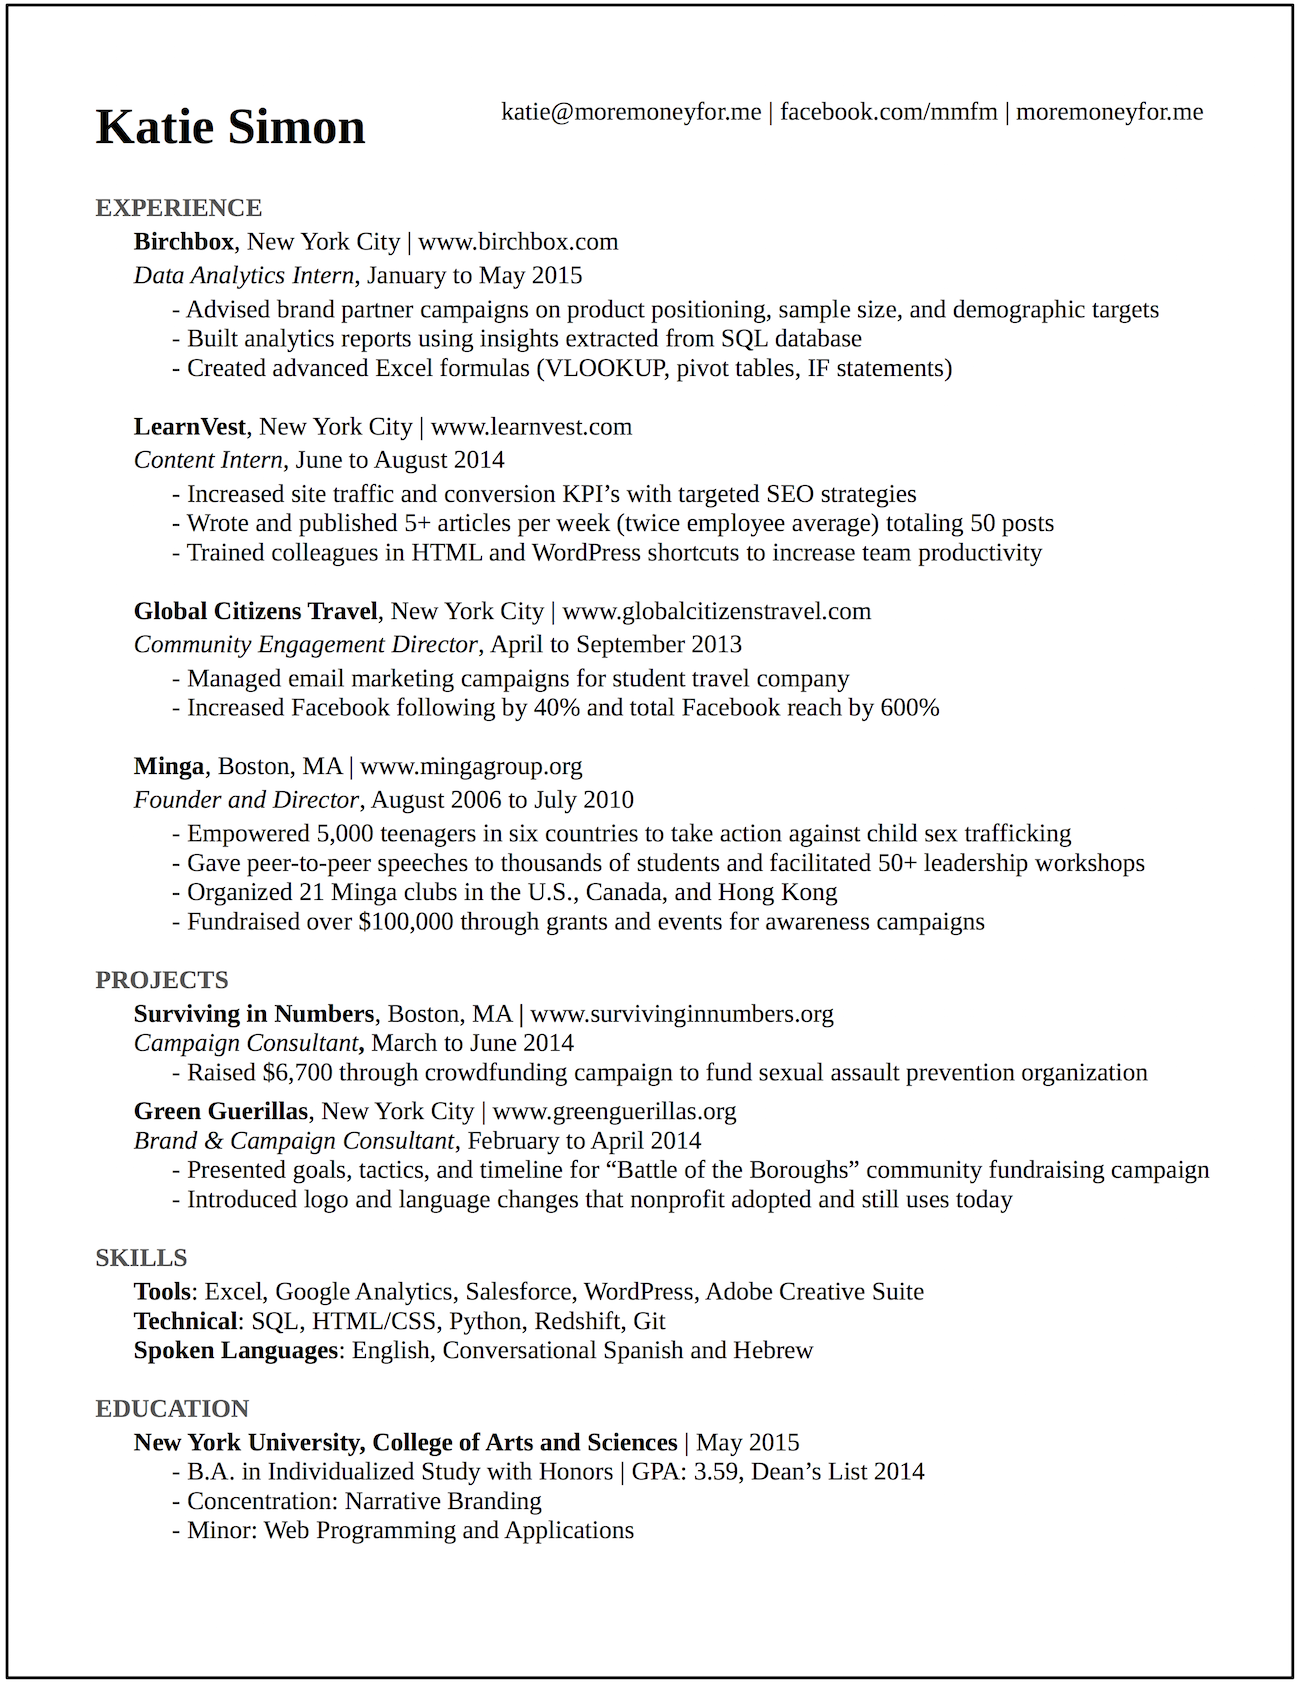 this résumé landed me interviews at google buzzfeed and more